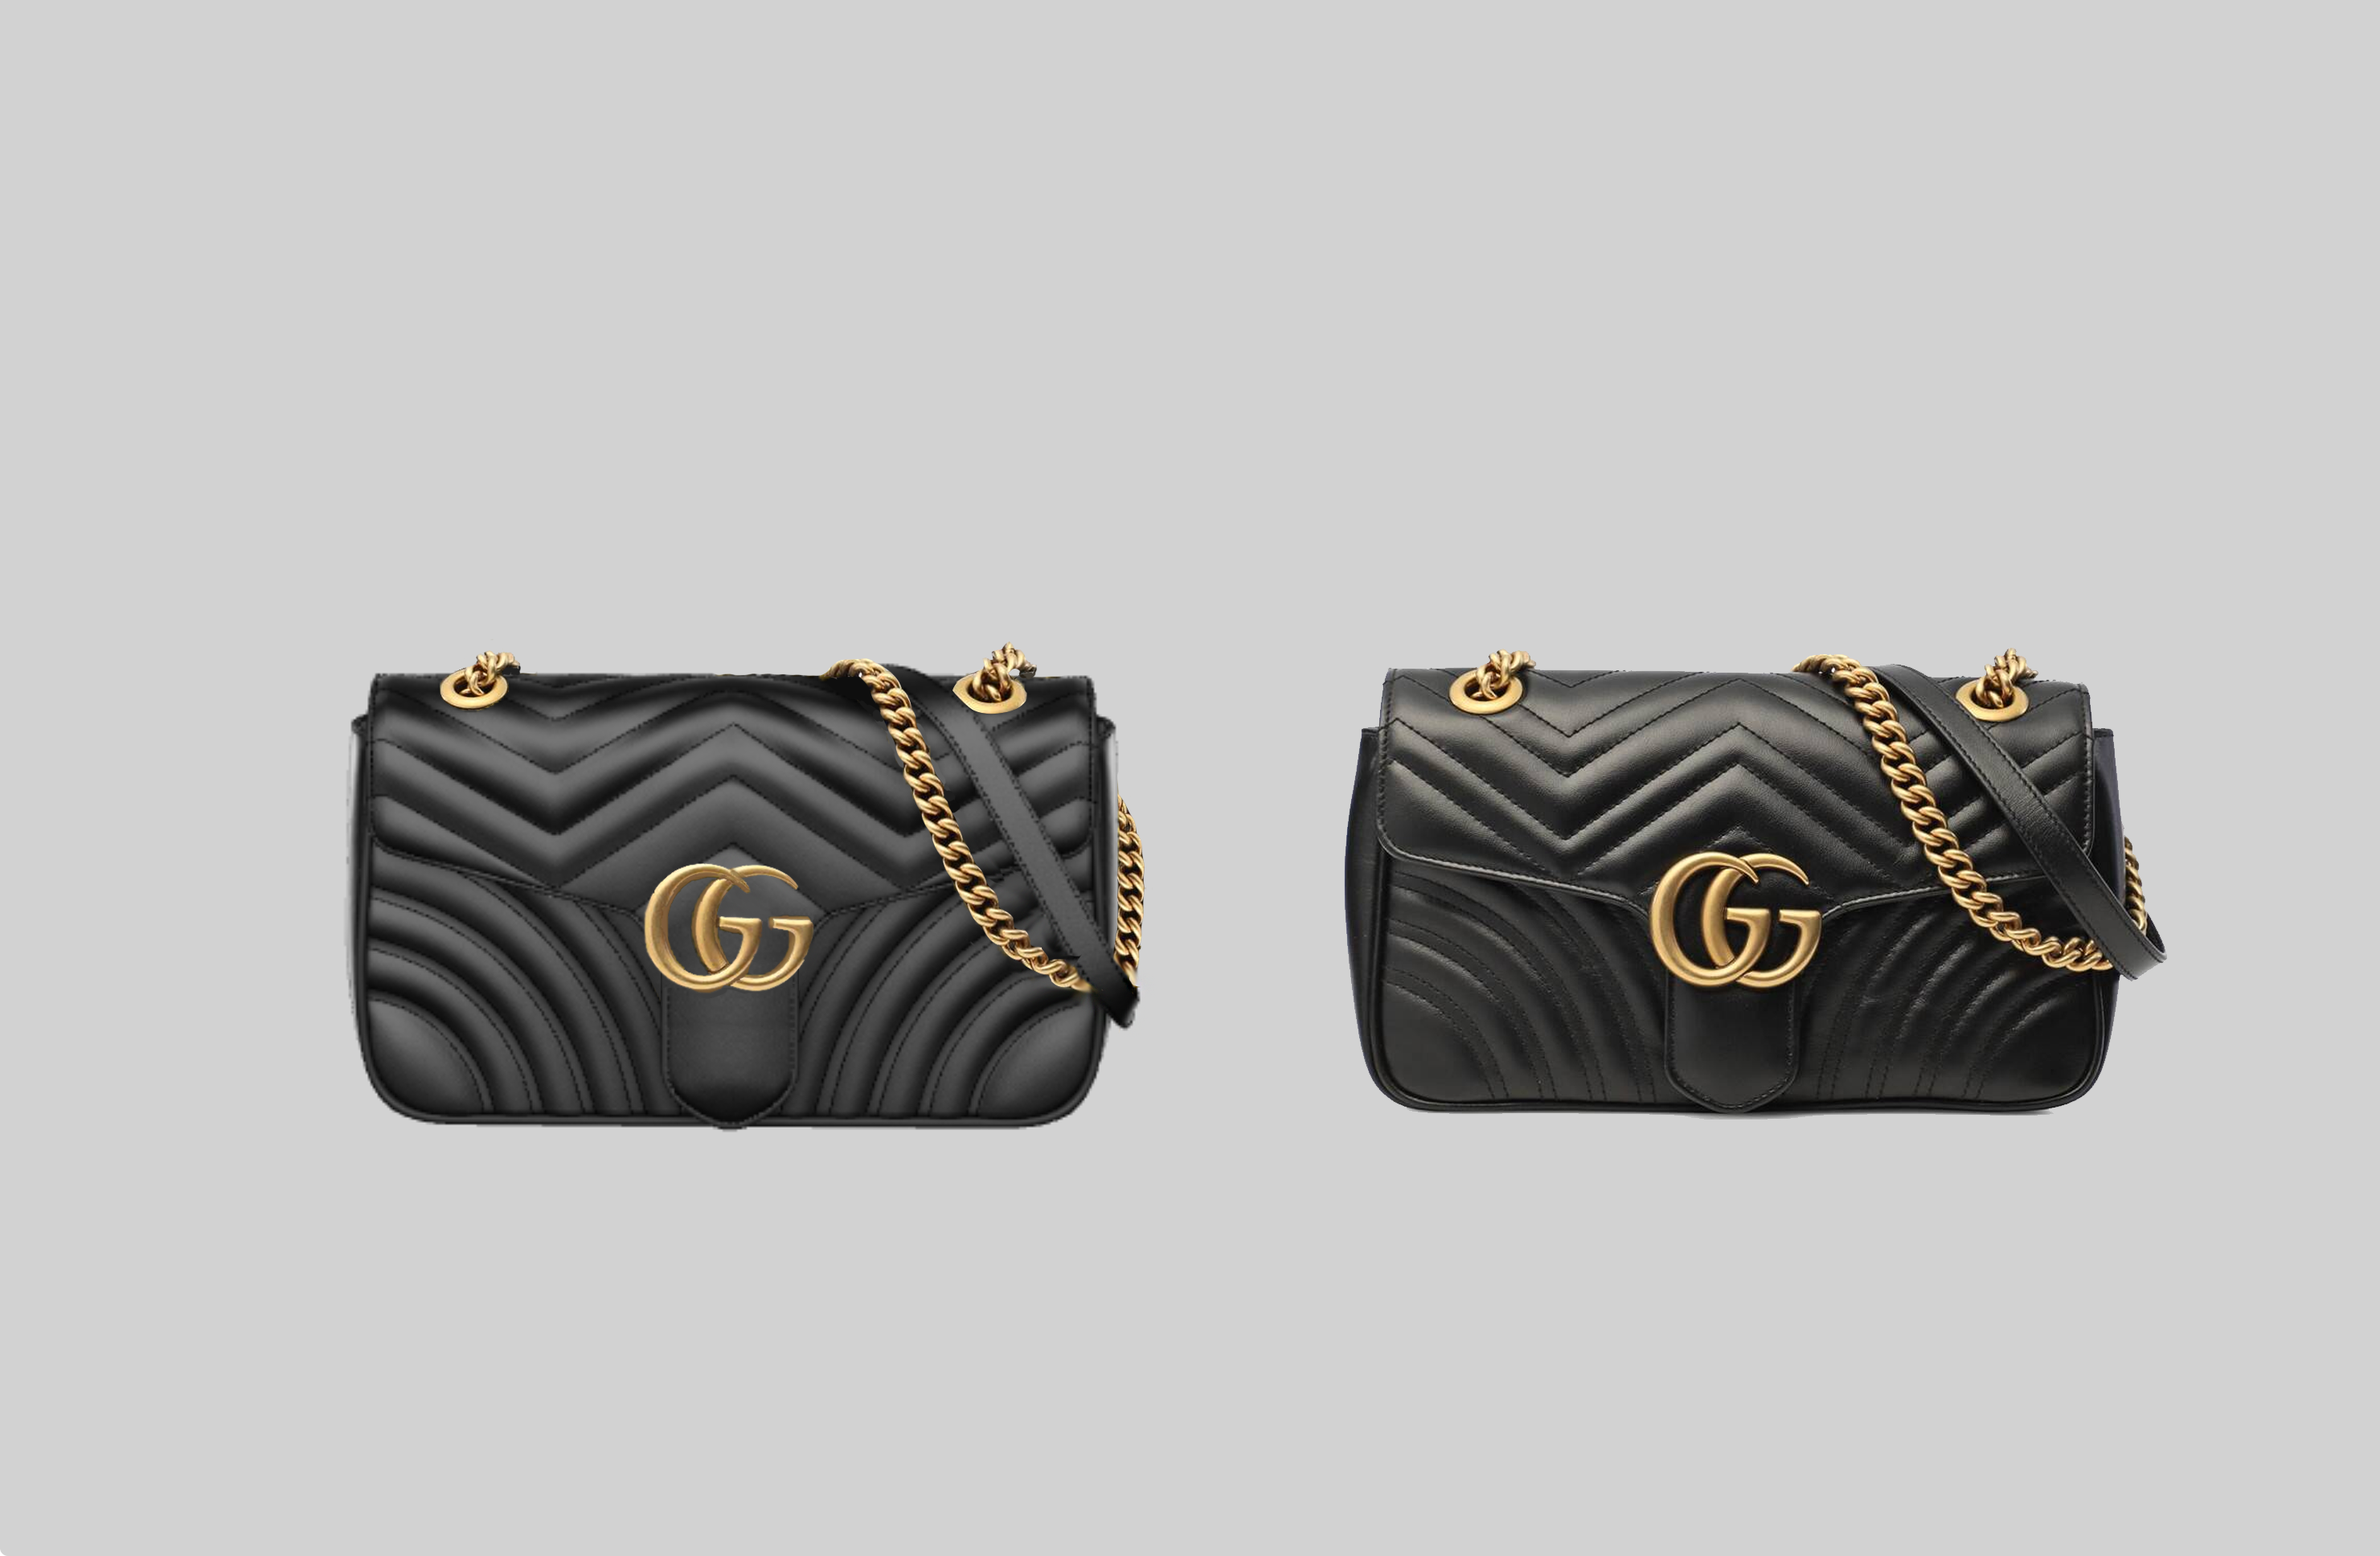 3D_Configurator_Gucci_Bag_Model_side_by_side